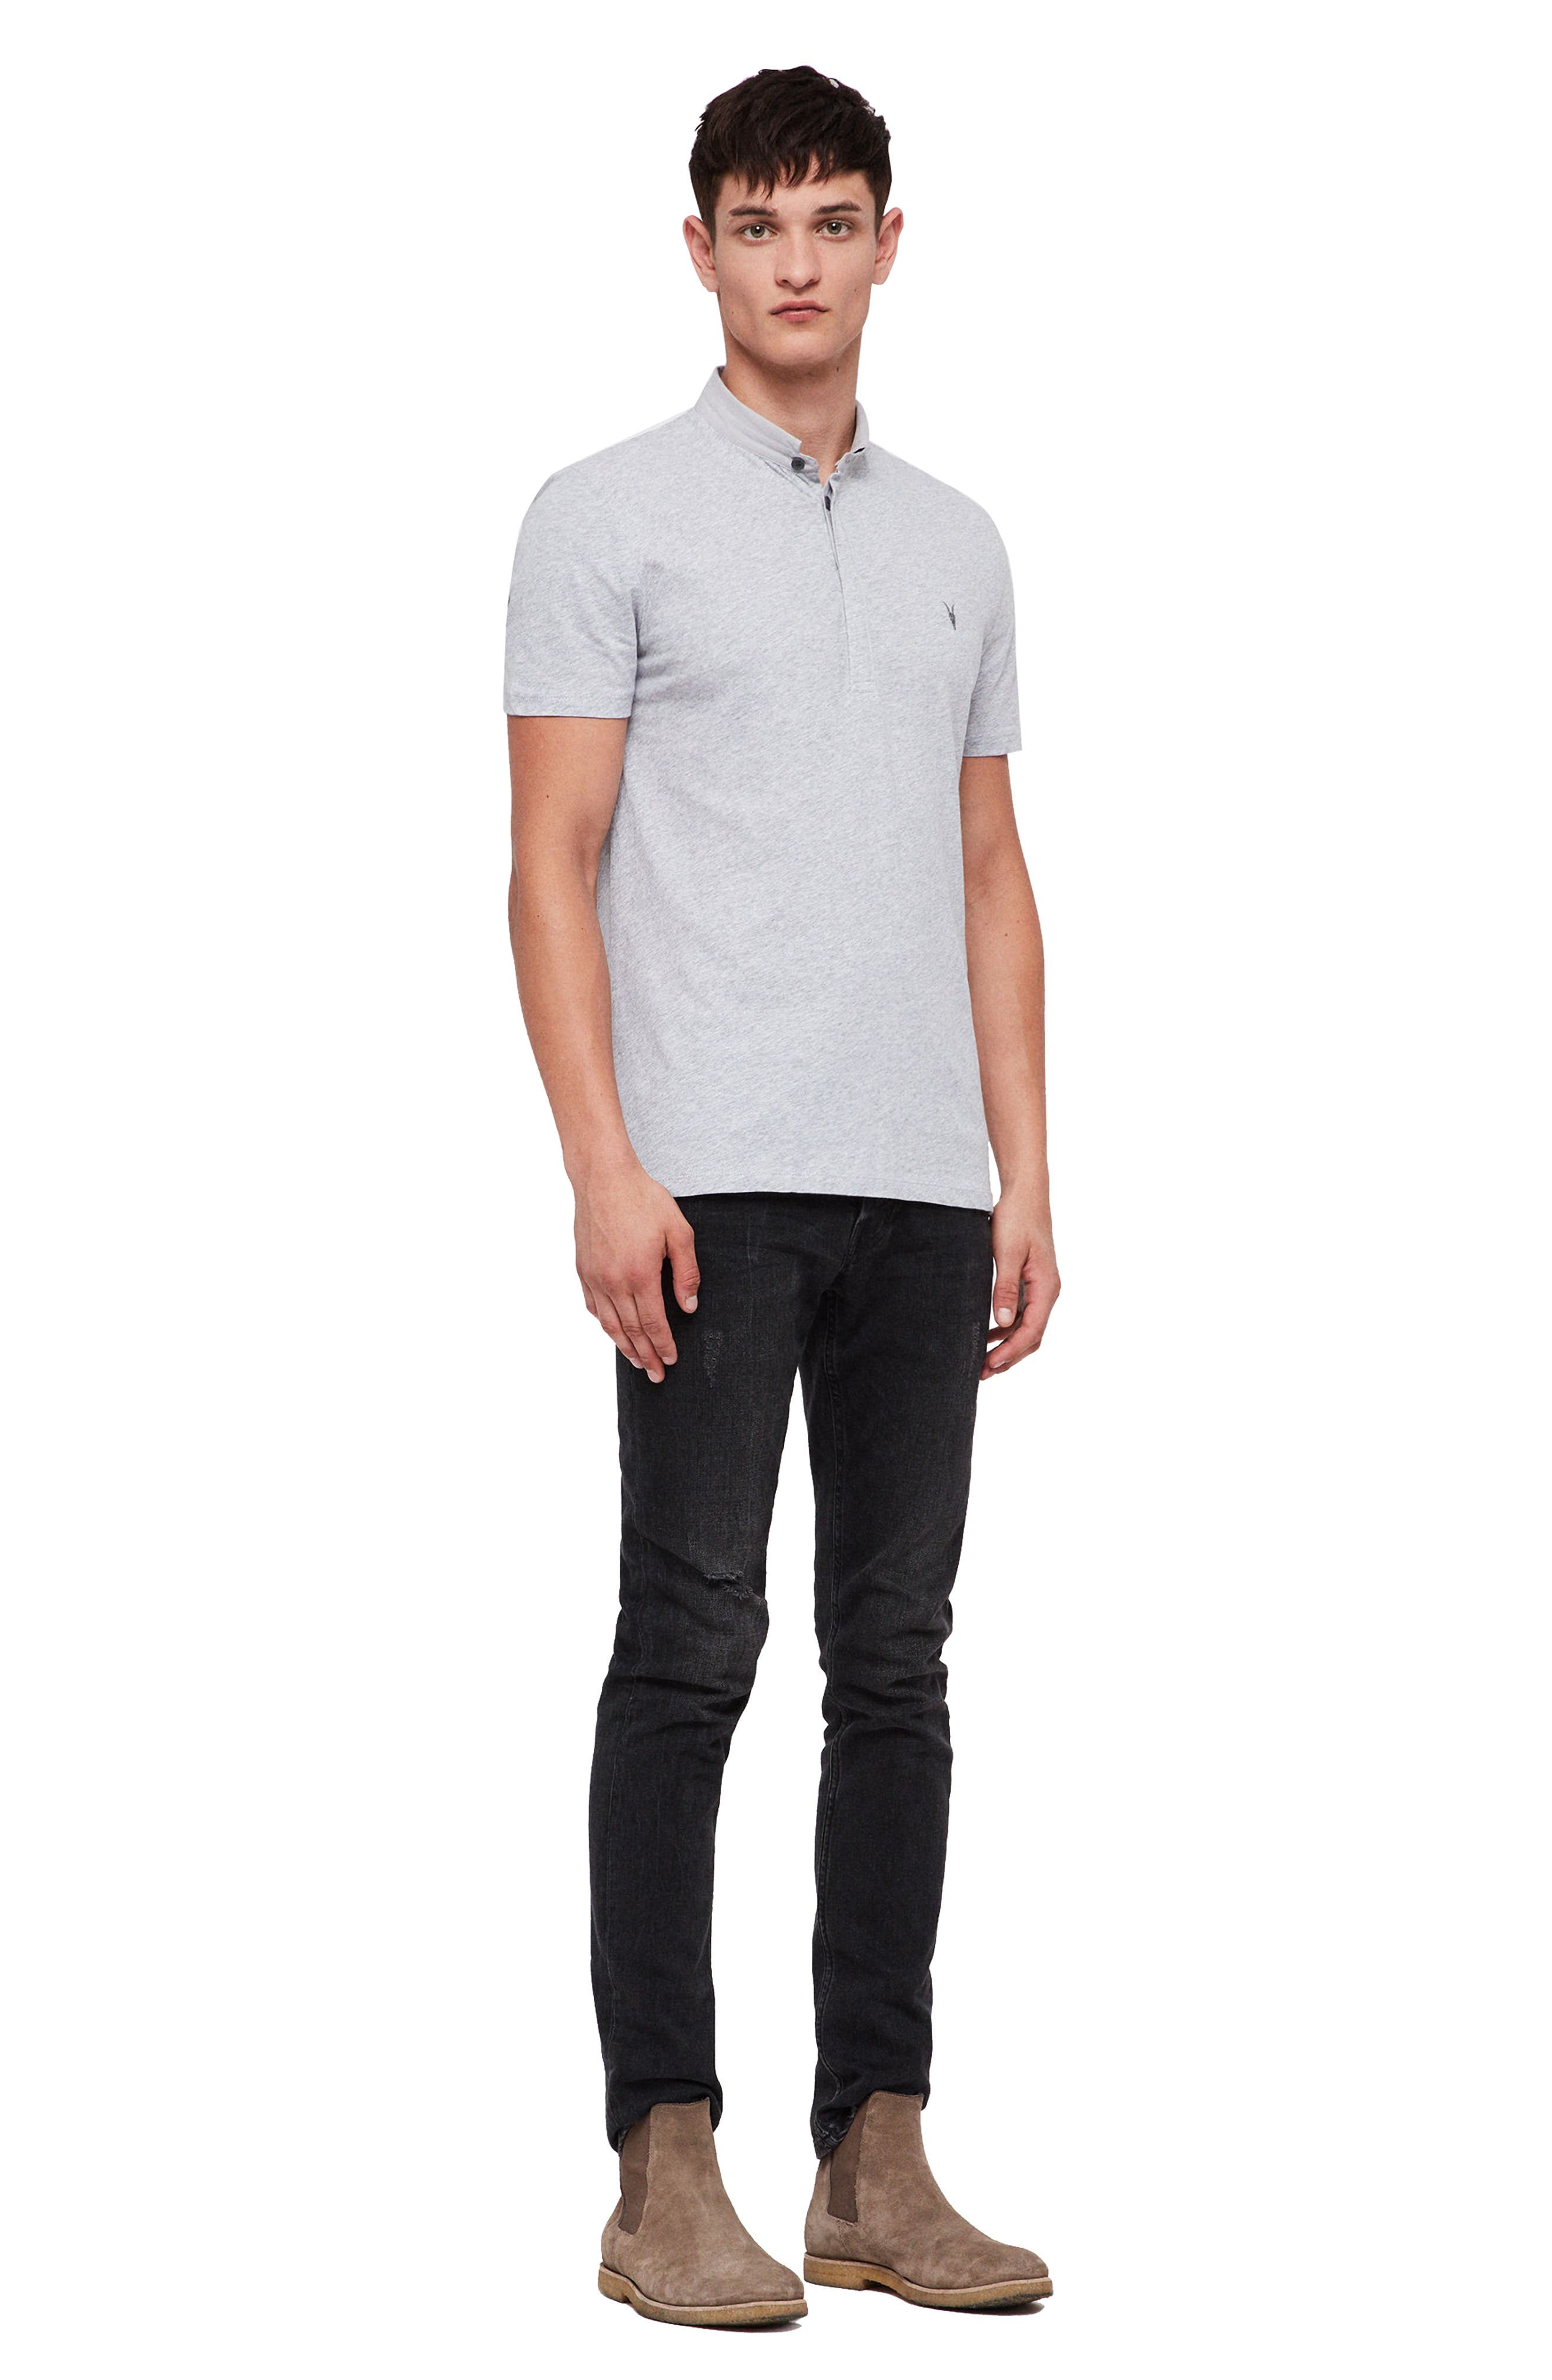 Grail Slim Fit Polo,                             Alternate thumbnail 4, color,                             GREY MARL